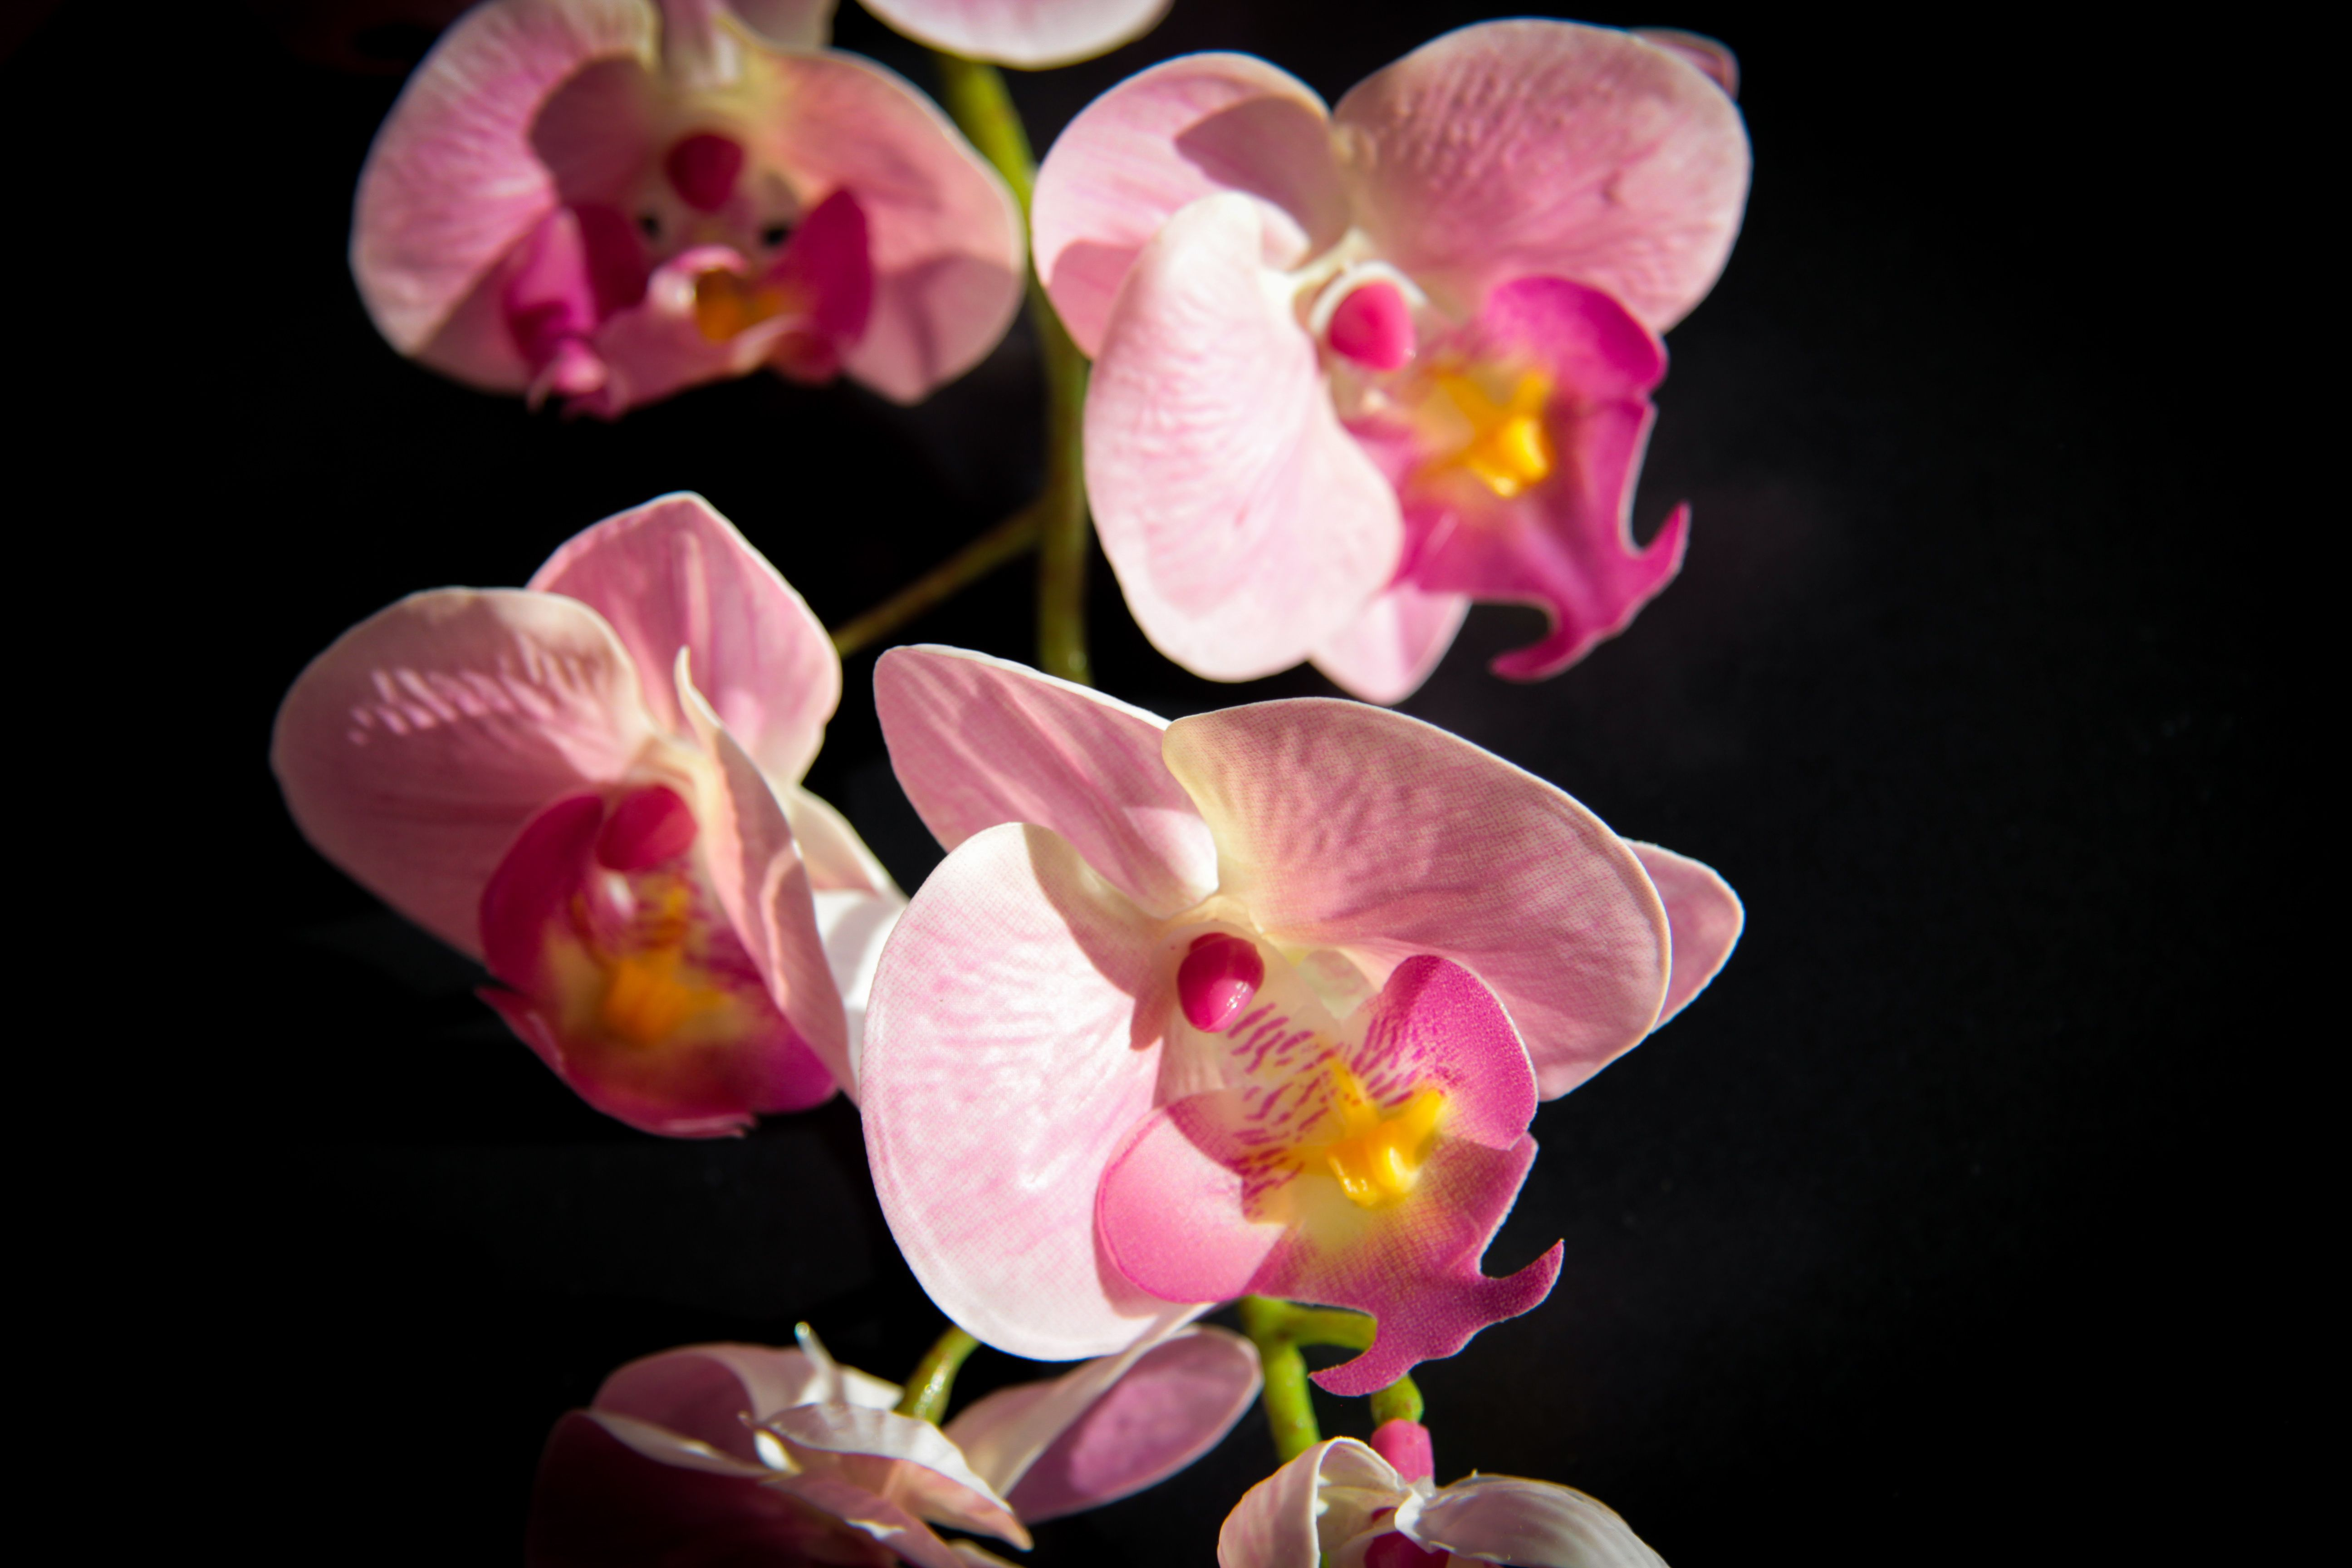 A Detail Of A Branch Of Orchid Flowers Photography Decoration Design Orchid Flower Purple Orchids Flowers Photography